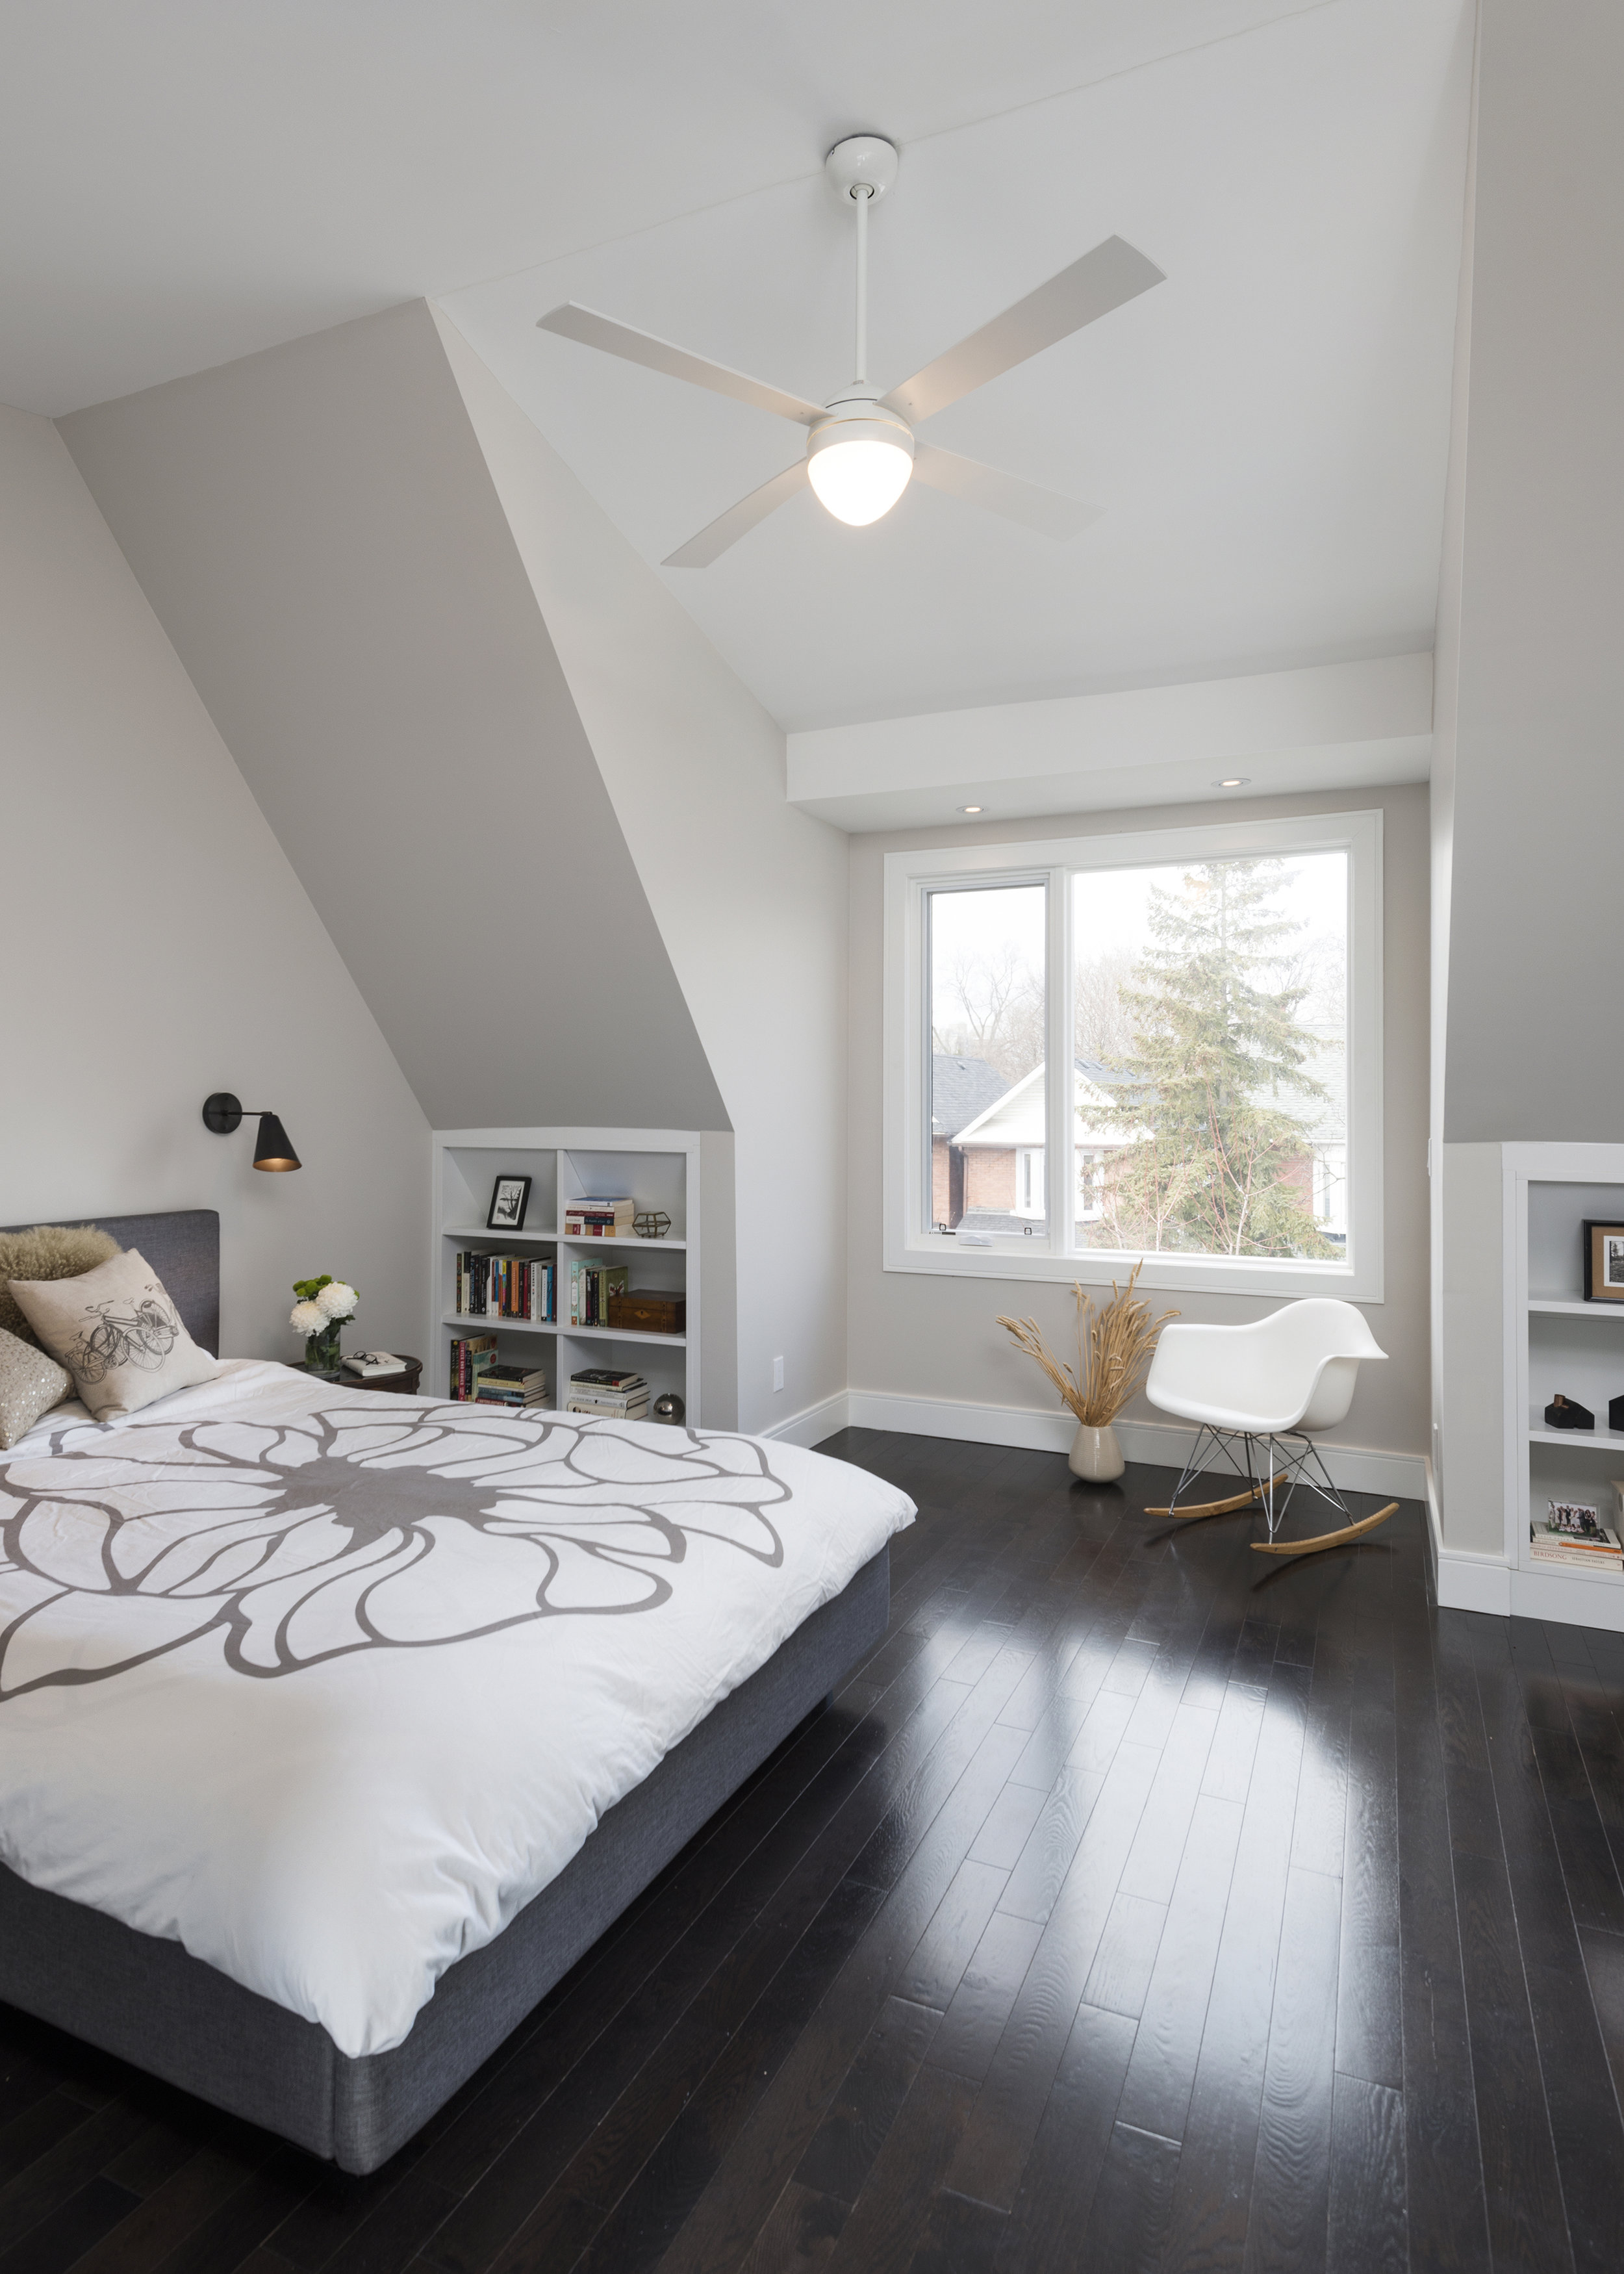 Attic Addition, 11' loft style Cathedral ceilings